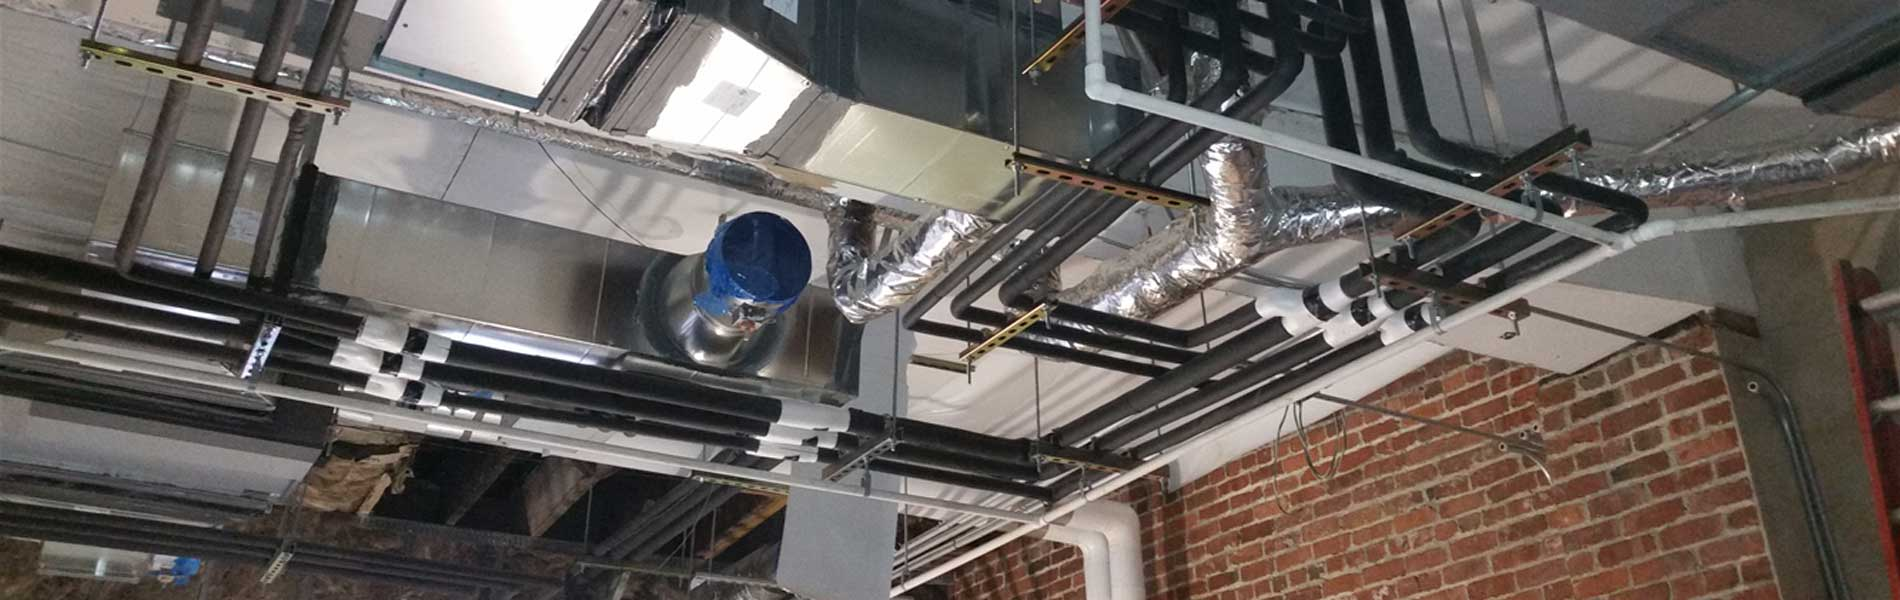 RESIDENTIAL & COMMERCIAL HVAC SERVICES